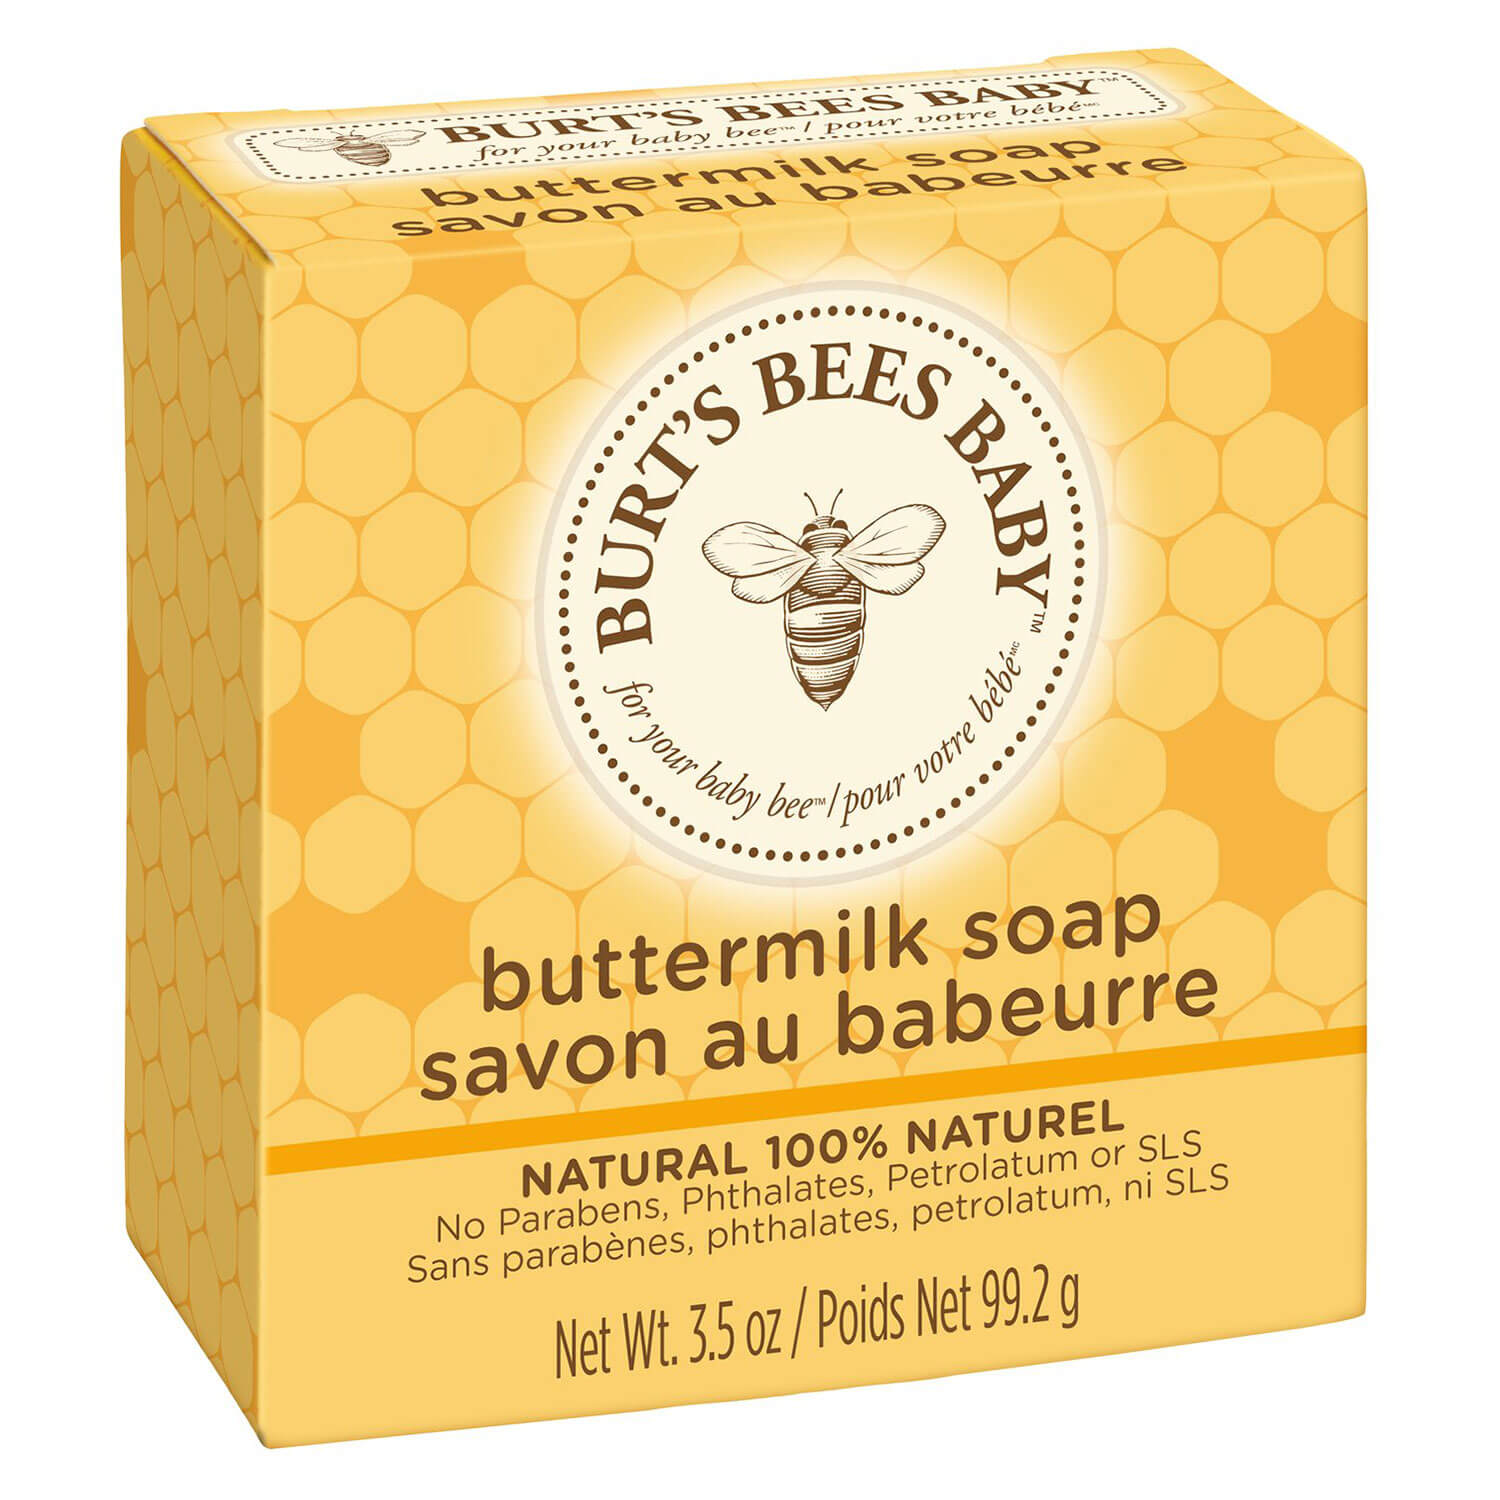 Baby Bee - Buttermilk Soap